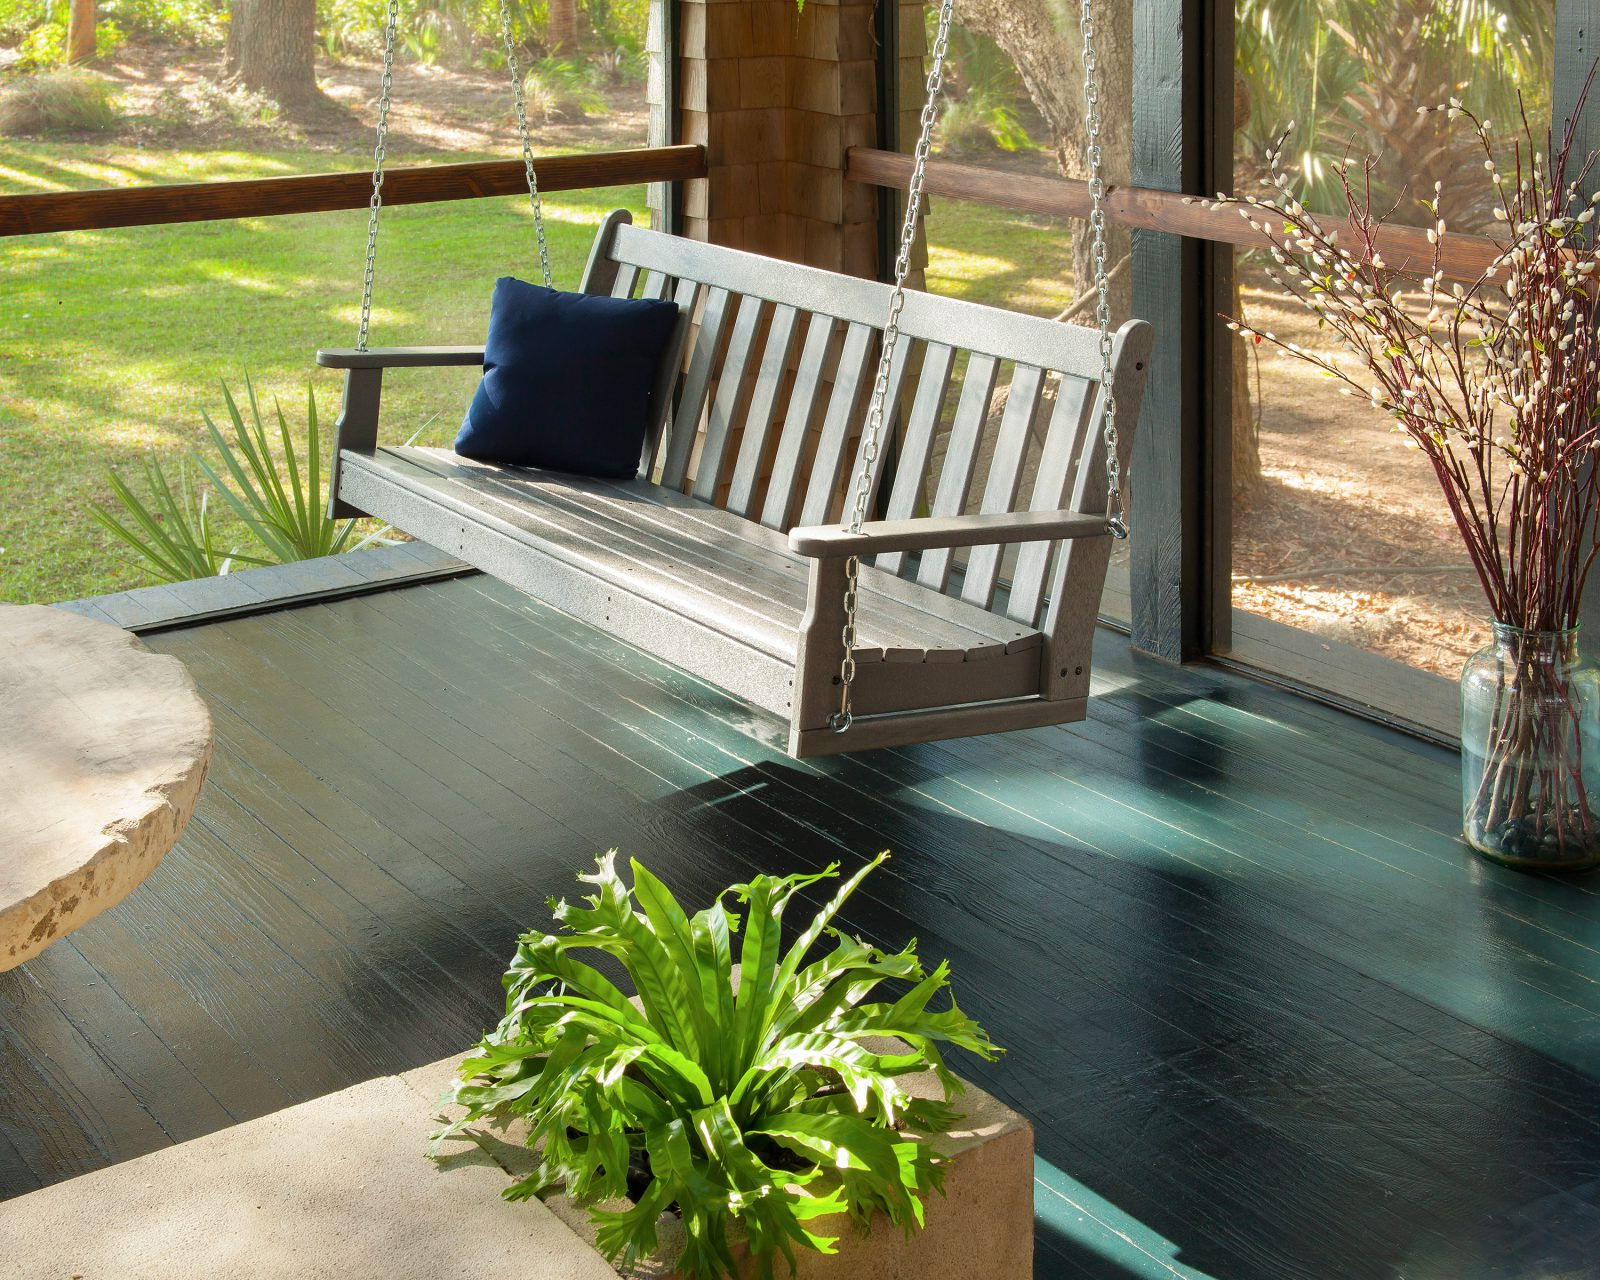 Fashionable Polywood Gns60Bl Vineyard 60 Swing Black Patio, Lawn Throughout Vineyard Porch Swings (View 15 of 25)